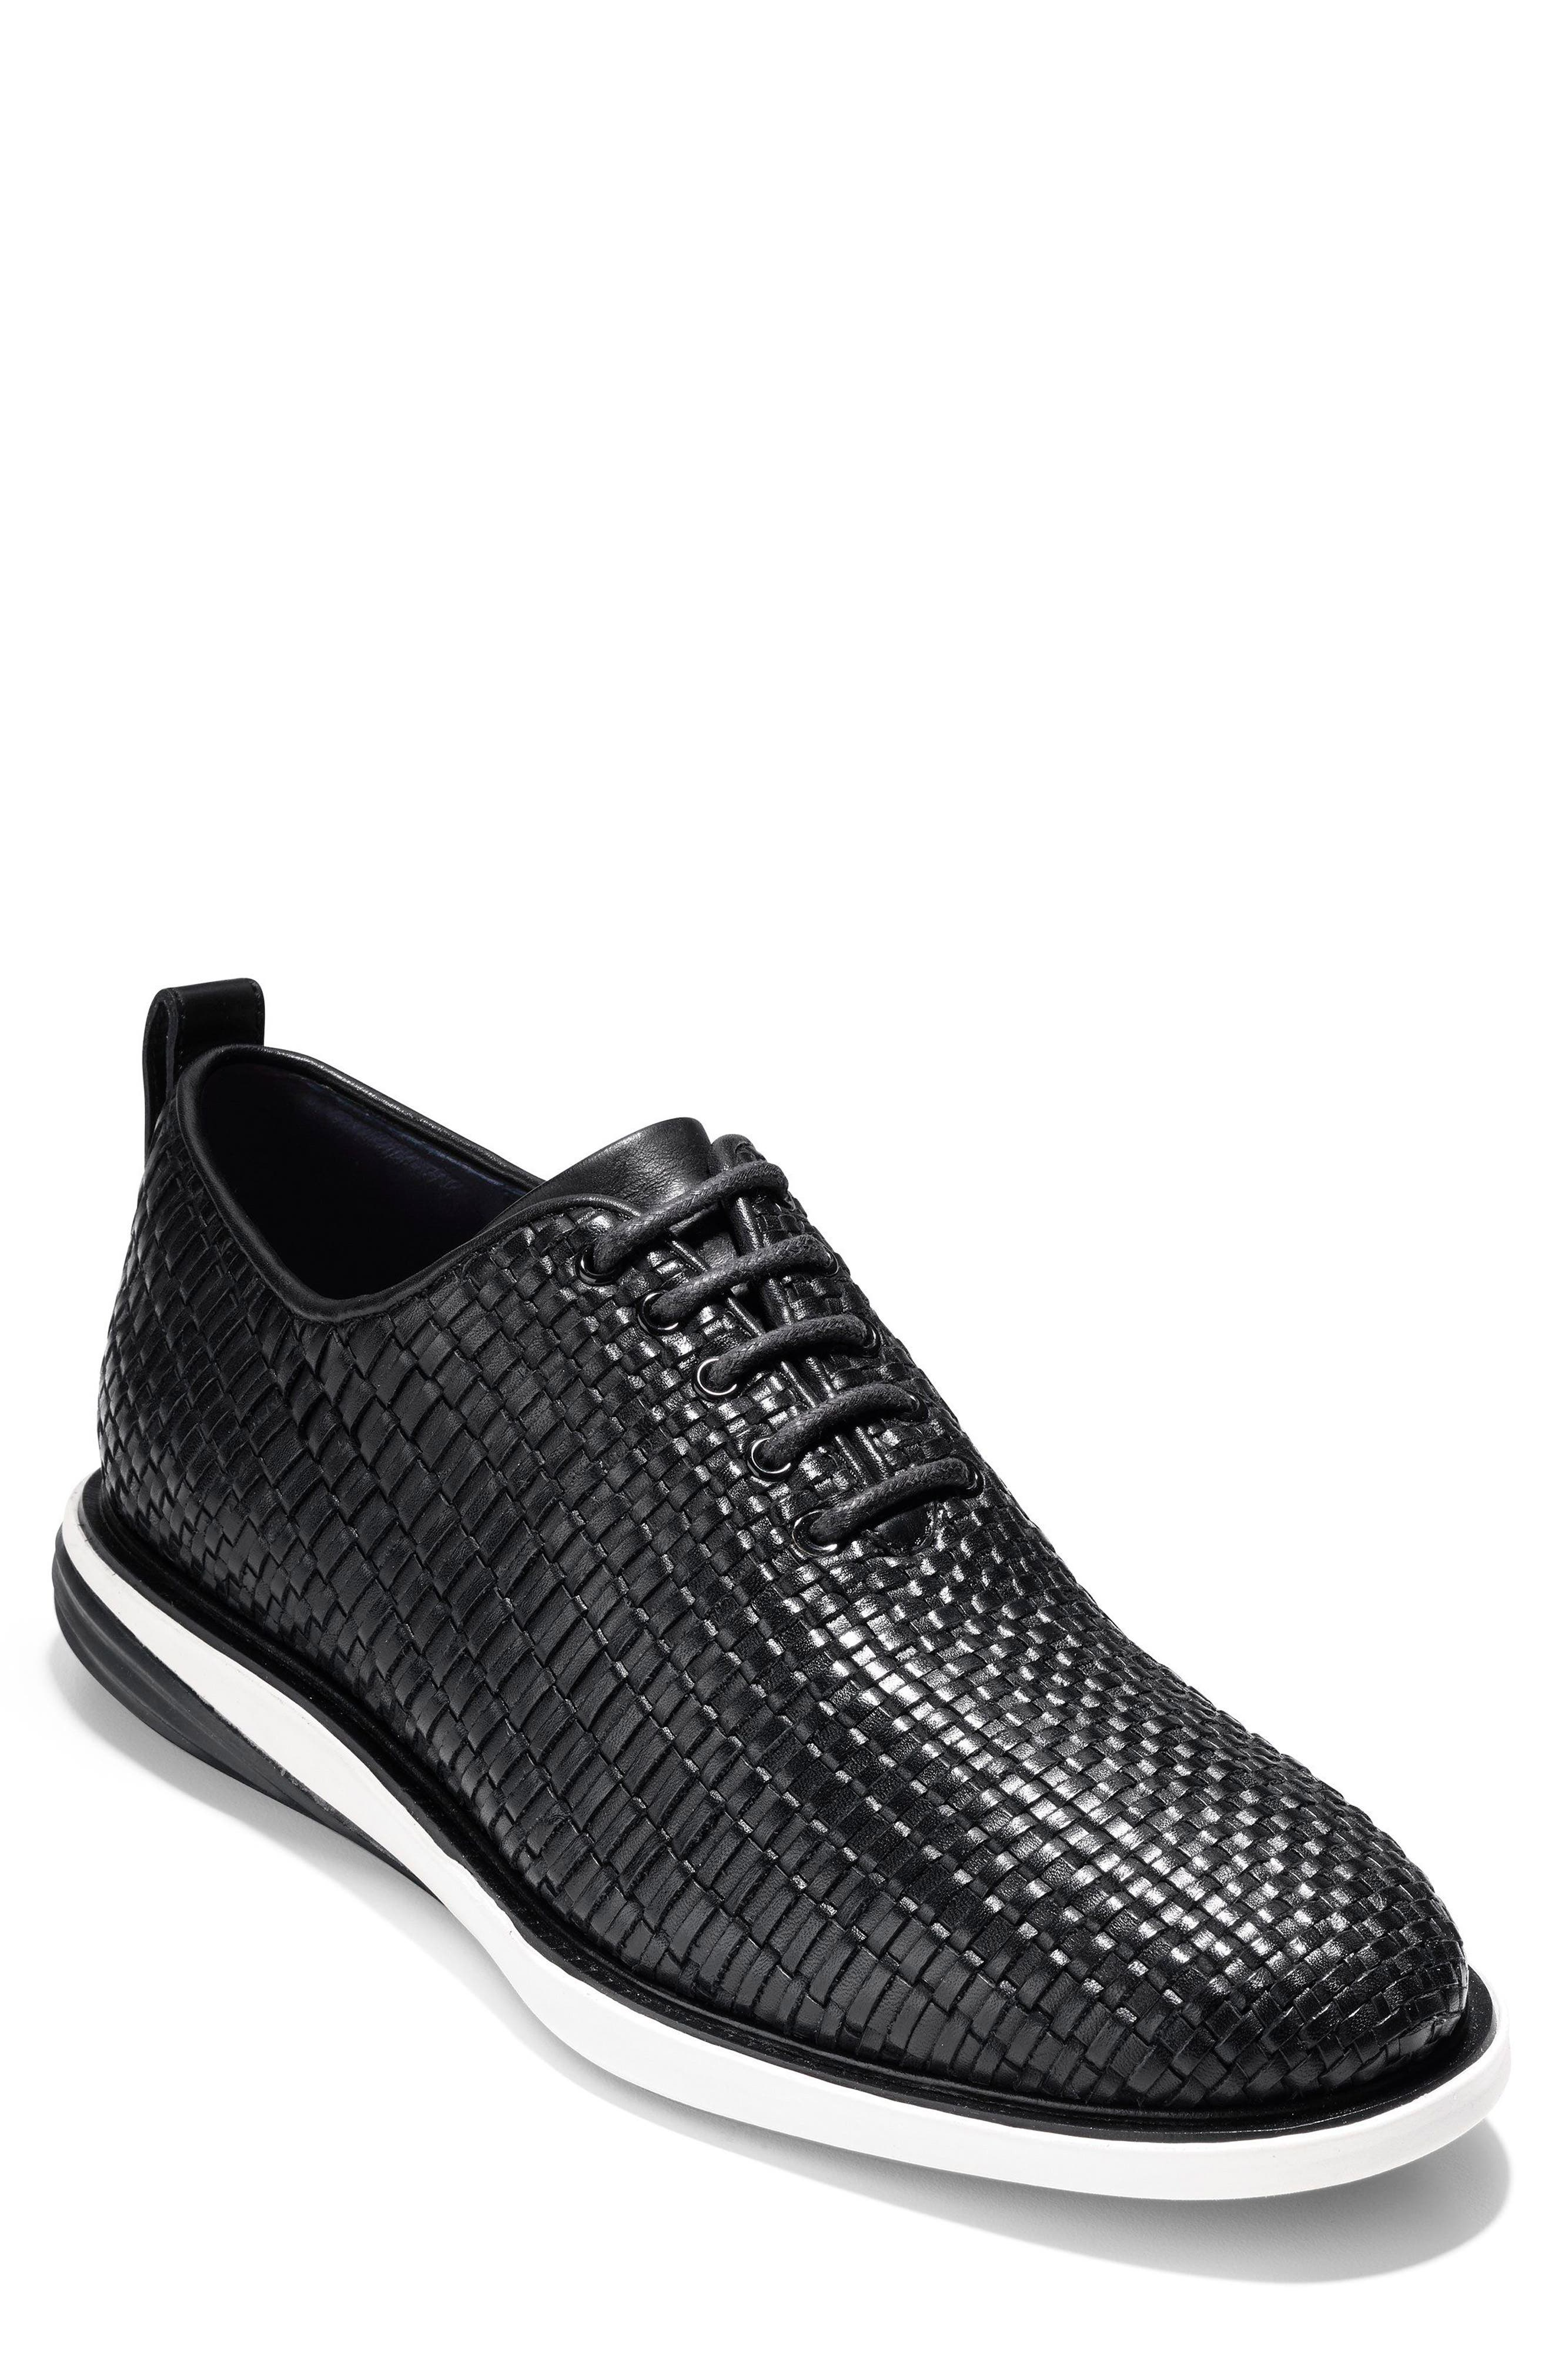 Grand Evolution Woven Oxford,                             Main thumbnail 1, color,                             Black Leather